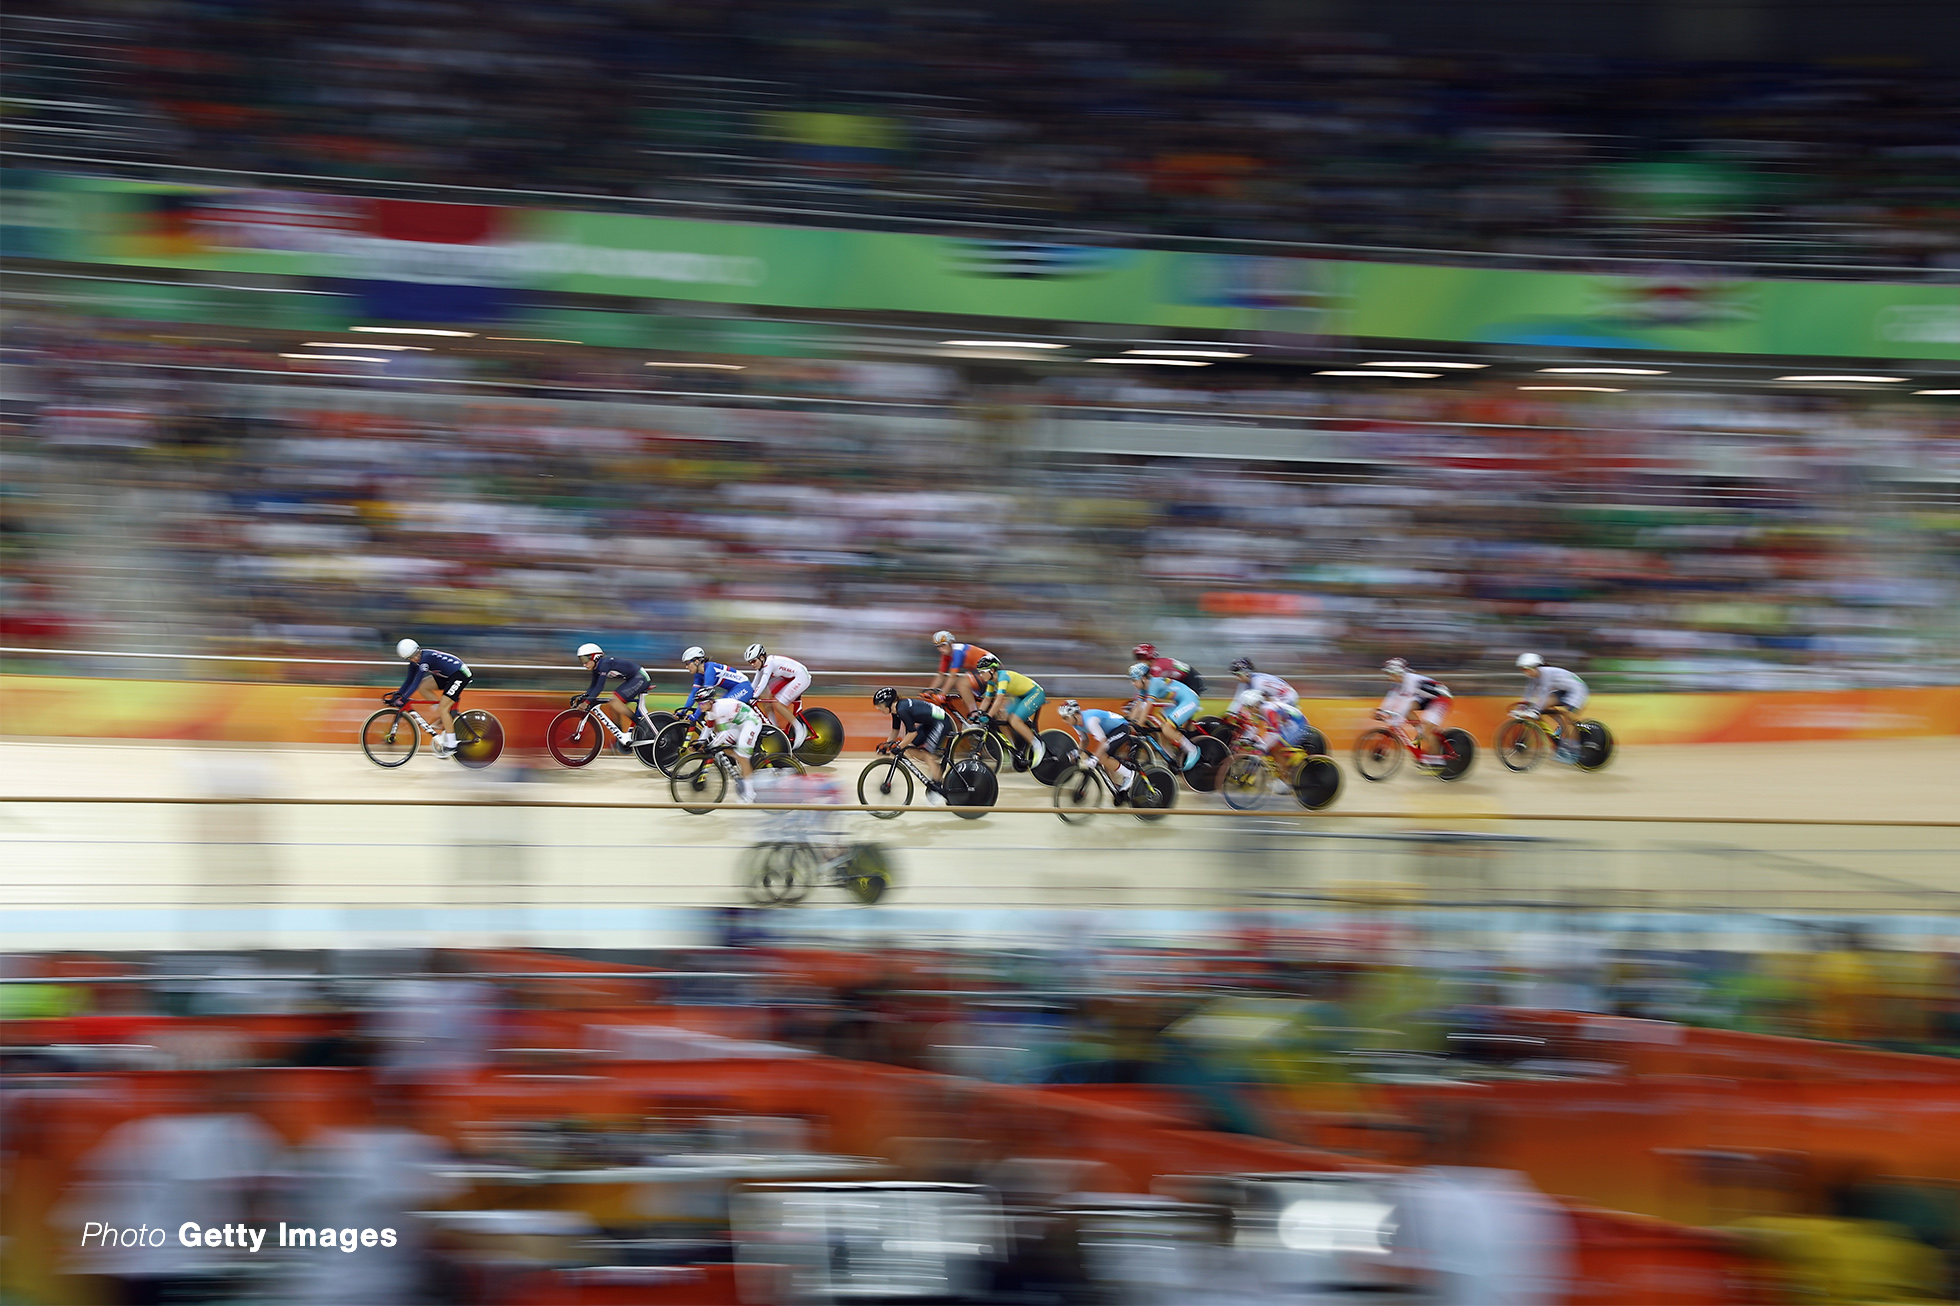 RIO DE JANEIRO, BRAZIL - AUGUST 16: Cyclists compete during the Women's Omnium Points race on Day 11 of the Rio 2016 Olympic Games at the Rio Olympic Velodrome on August 16, 2016 in Rio de Janeiro, Brazil. (Photo by Bryn Lennon/Getty Images)